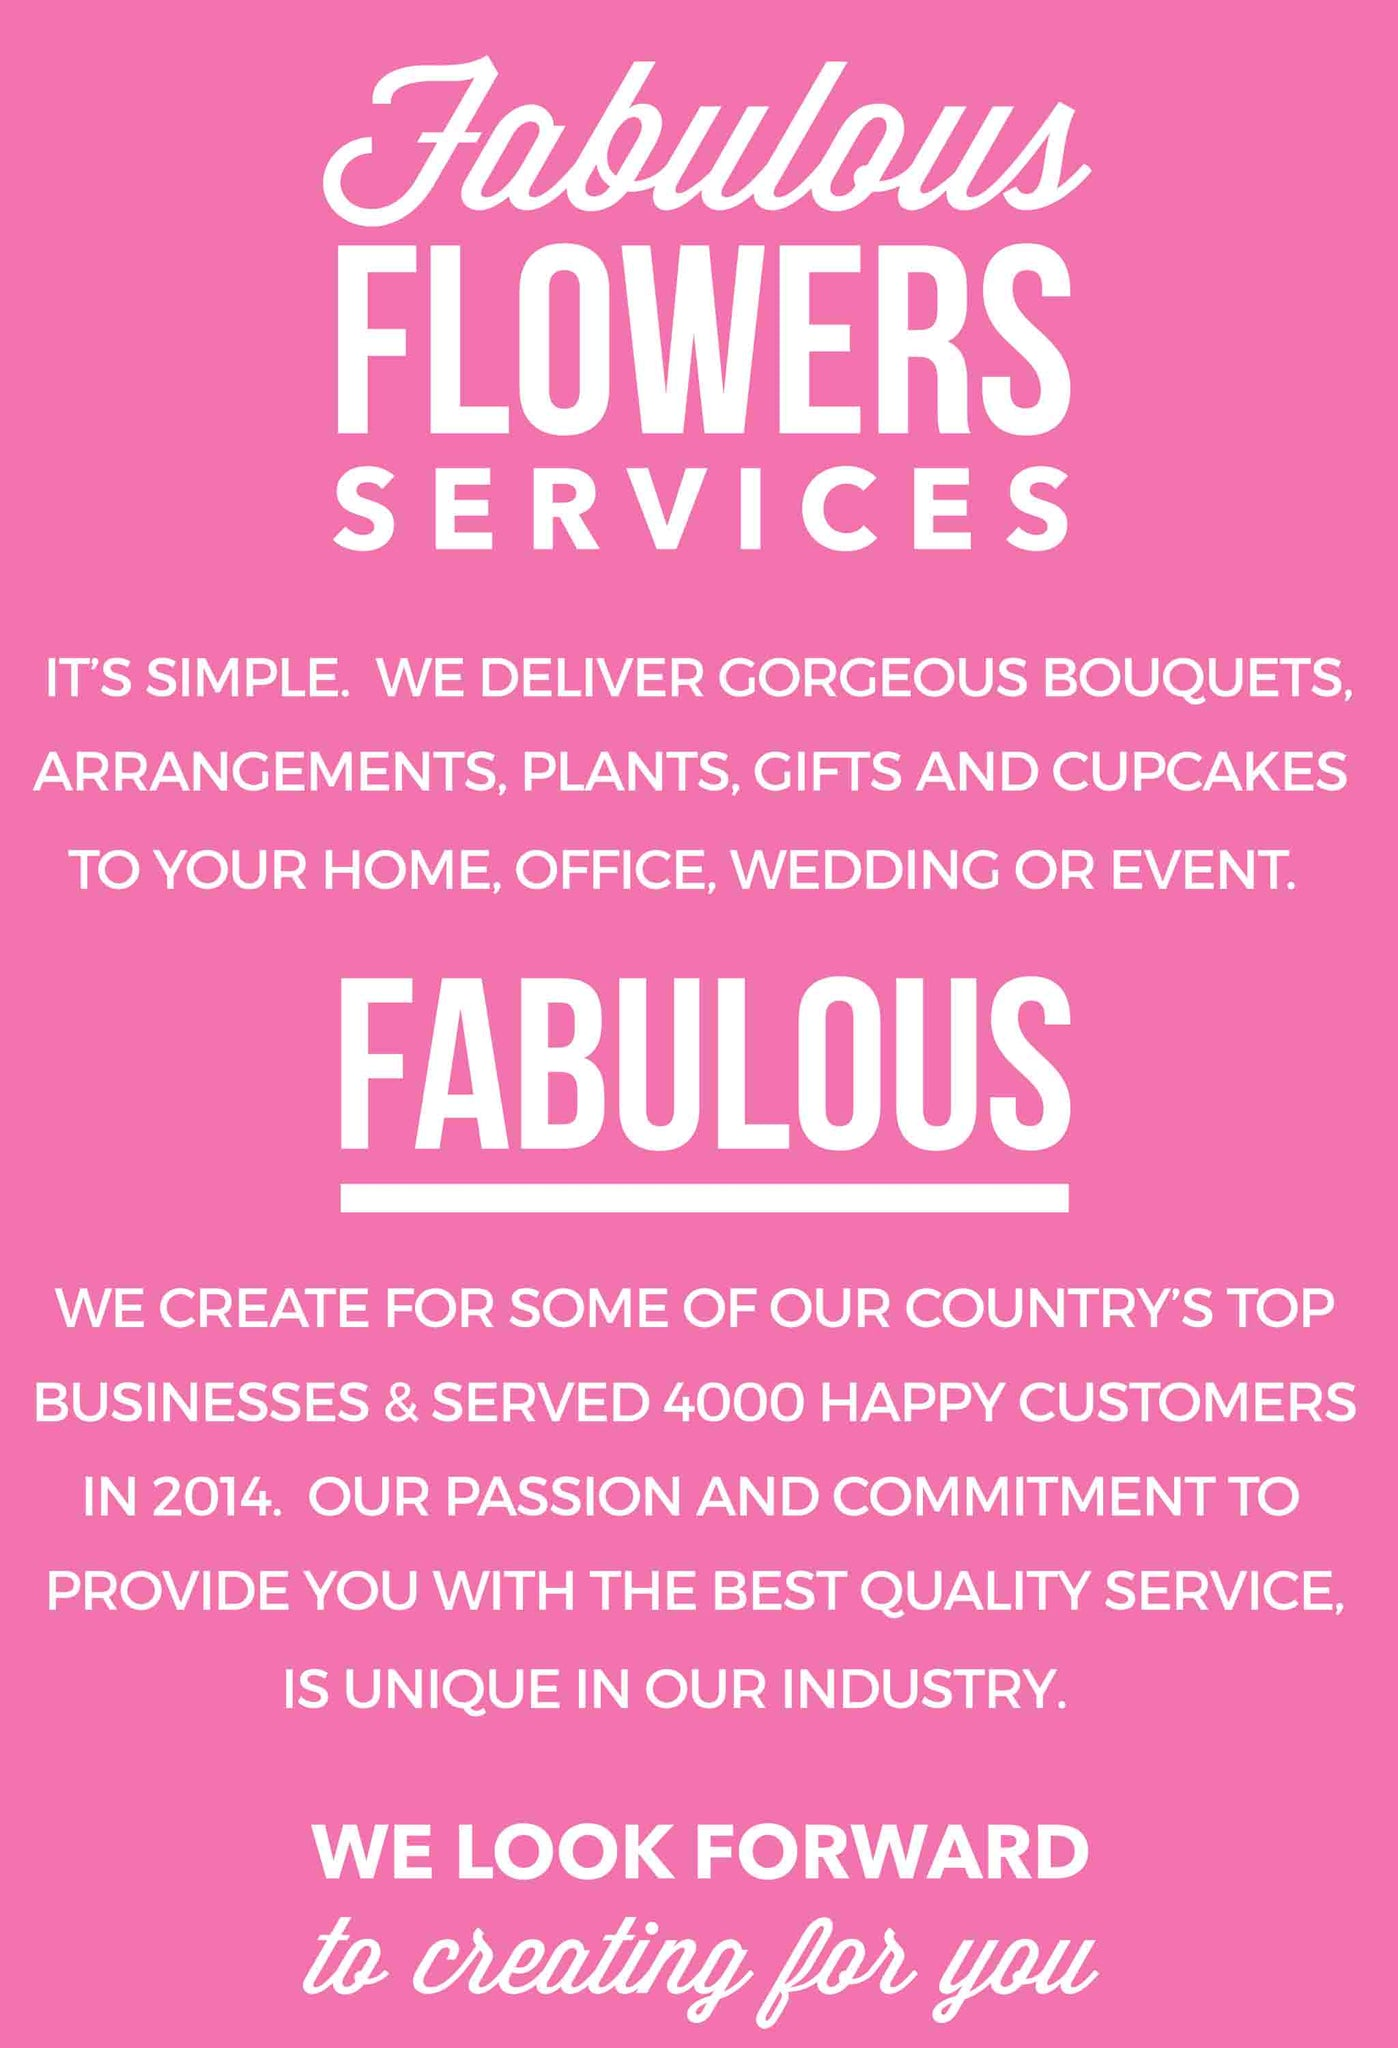 Online Gifts. Fabulous Flowers - flowers delivered Cape Town. Online florist, flowers online, order flowers online, flower arrangements online, bouquets online, gifts online. fabulous flowers cavendish florist claremont cape town flower school the flowershop wedding flowers florist nearby beautiful wedding arches flower arrangements cape town flower bouquets near me flowers kenilworth florist the flower shop florest delivery flower delivery near me claremont flower delivery wedding arch florist bouquets florist hout bay flower store fabulous flowers cape town wedding bouquets cape town florist kenilworth flowers cape town wedding flowers cape town florist cape town cbd flower cape town florist in claremont cape town florist southern suburbs flowers kenilworth flowers claremont nearest florist cape town flower wedding florist cape town flower deliveries cape town cape town flowers flower shops cape town florists claremont send flowers to cape town flowers cape town delivery cape town florists send flowers cape town bridal bouquets cape town online florist cape town orchid mist flowers shop near me flowers on flowers flowers near me square flowers pretty arch cape town flower delivery flower delivery cape town florist near me flower shop in cape town www.fabulous florist delivery cape town online florists cape town florists cape town florists in claremont florist cape town flowers in cape town cape town florist flower shop cape town flowers online cape town flower shops in cape town wedding bouquet florist in cape town cbd flower shops florist in cape town fabulousflowers best florist nearest flower shop purple plant pot wedding bouqet nearest florist shop cavendish the cape town florist florist claremont flower delivery service cape town wedding florists cape town florist cape town delivery flowers for wedding florists in cape town flower delivery in cape town floral wedding arch cost flower shop near me